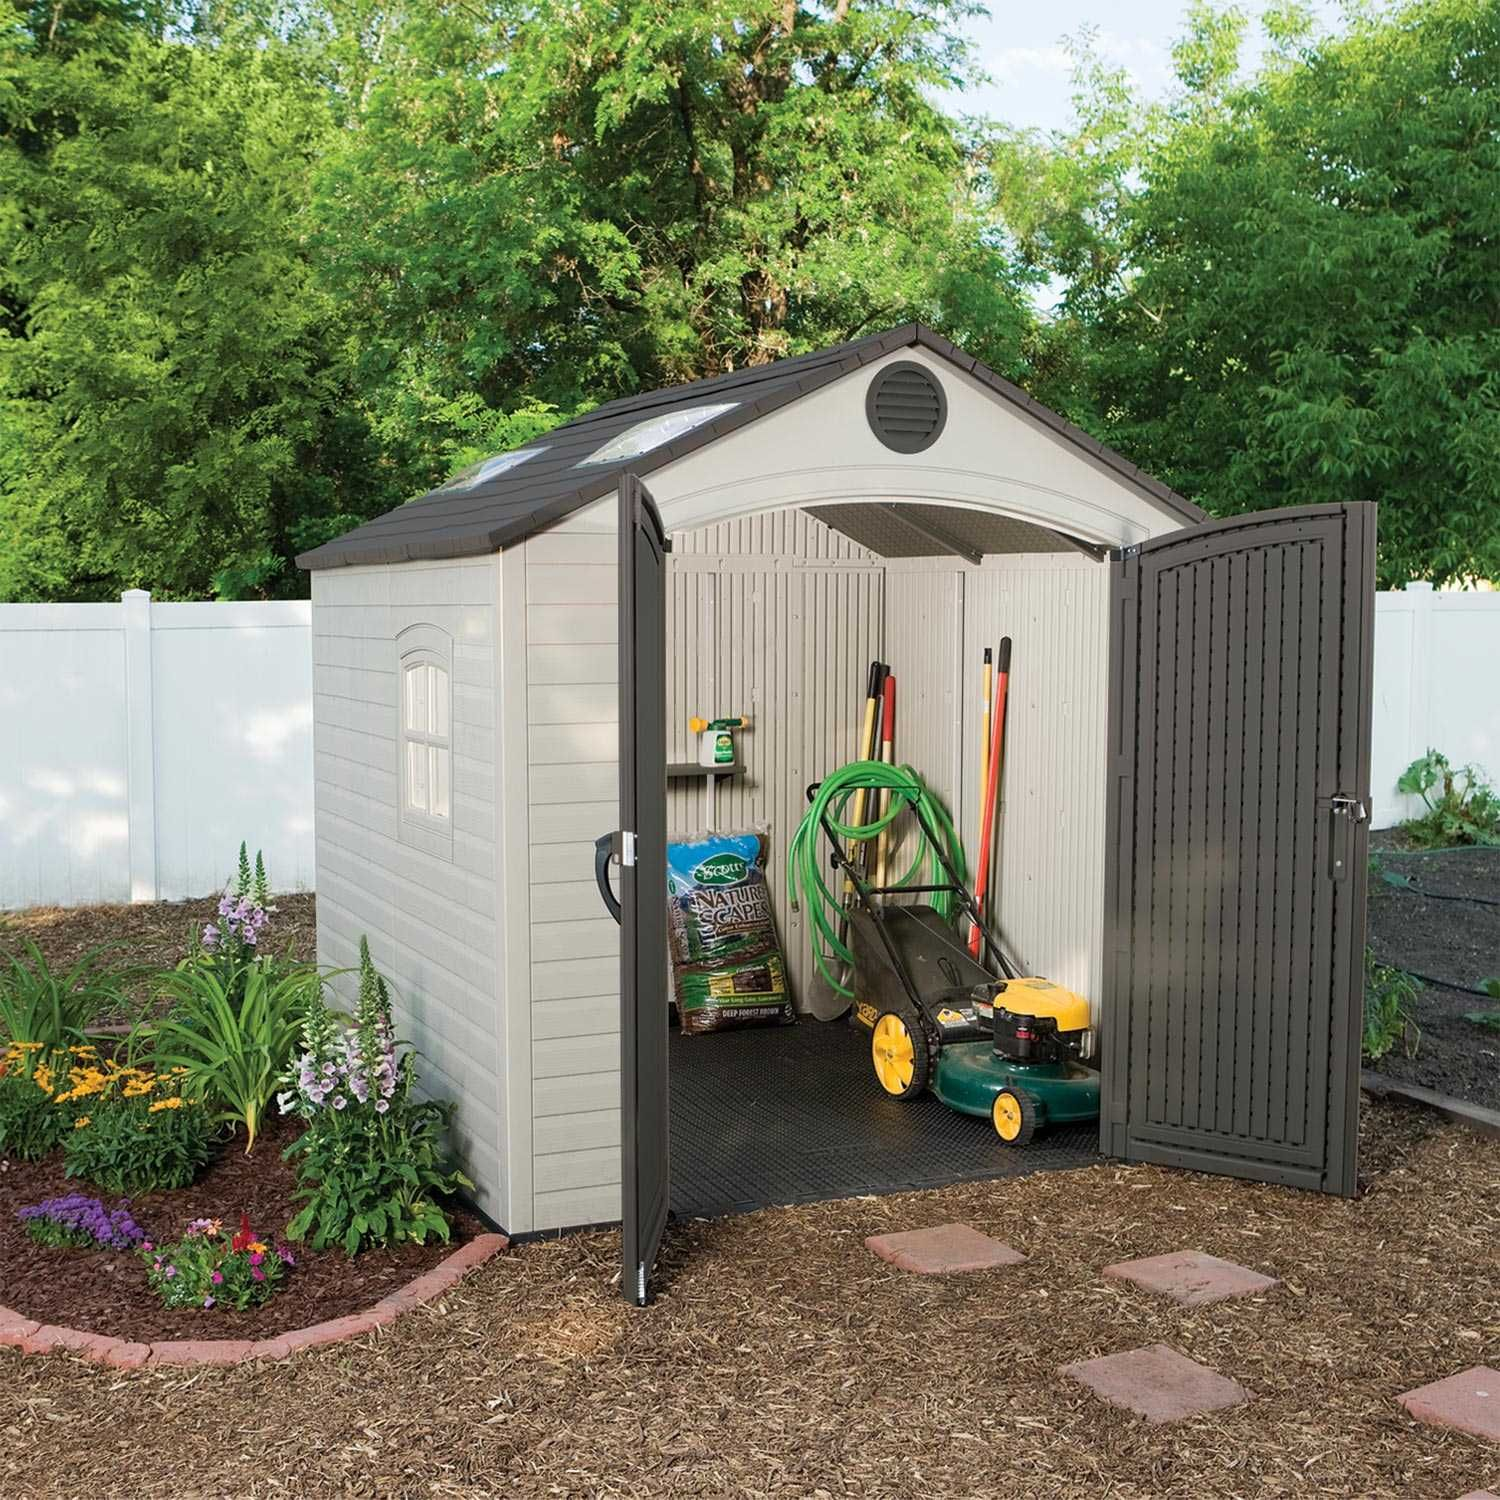 60015 53 Square Ft 362 Cubic Ft The Lifetime 8 X 7 5 Outdoor Storage Shed Features 2 Large Skyl Garden Storage Shed Shed Landscaping Plastic Sheds